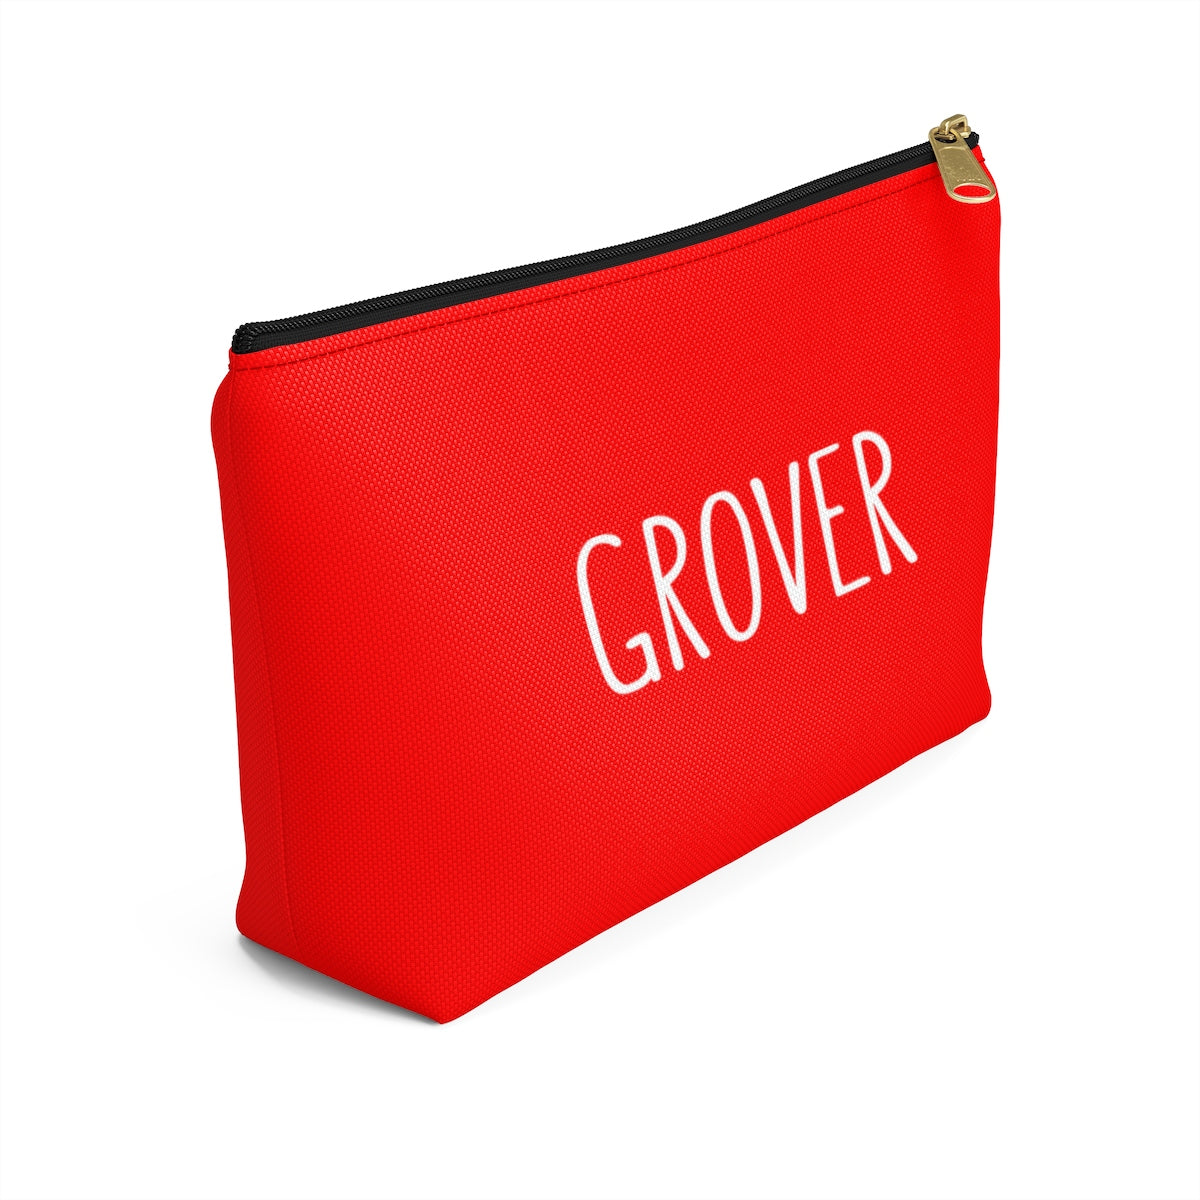 Grover Accessory Bag: Red